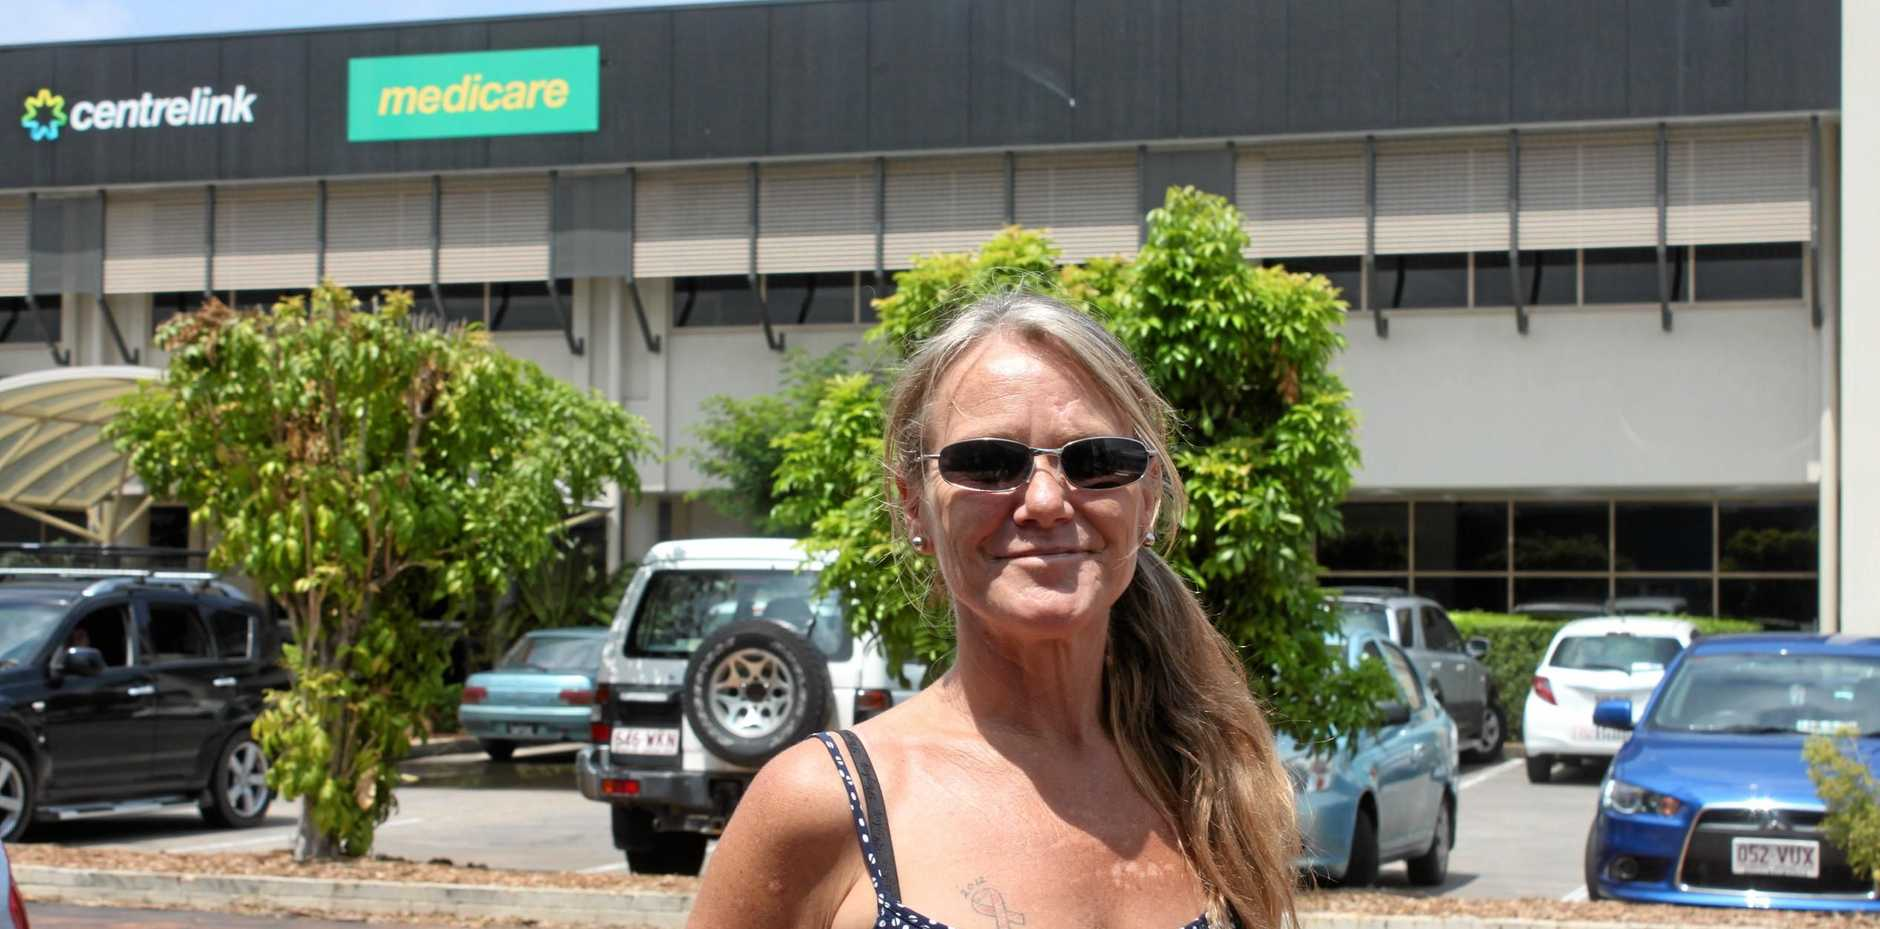 ADANI EXCITEMENT: Rockhampton local Jo Boyd says Adani FIFO jobs are great news for the region.